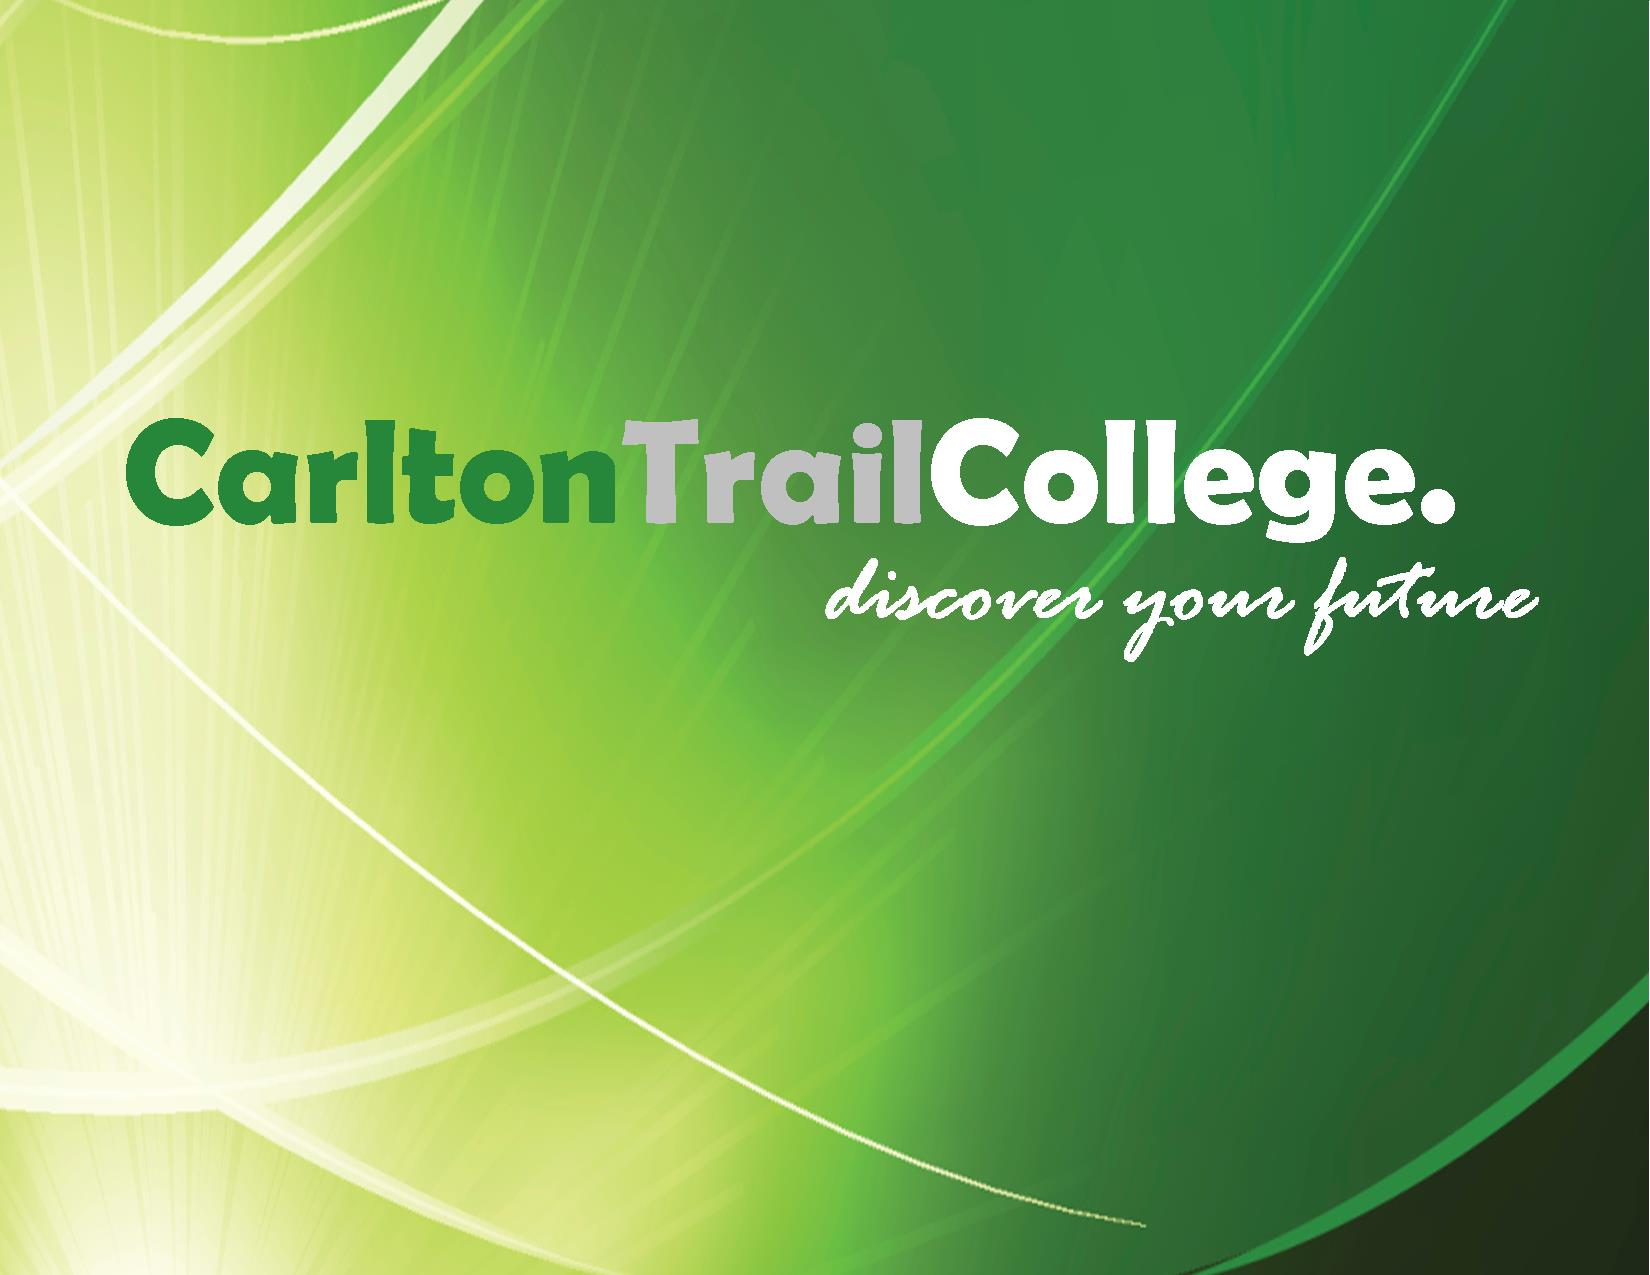 Carlton Trail College Logo on light and dark green background.